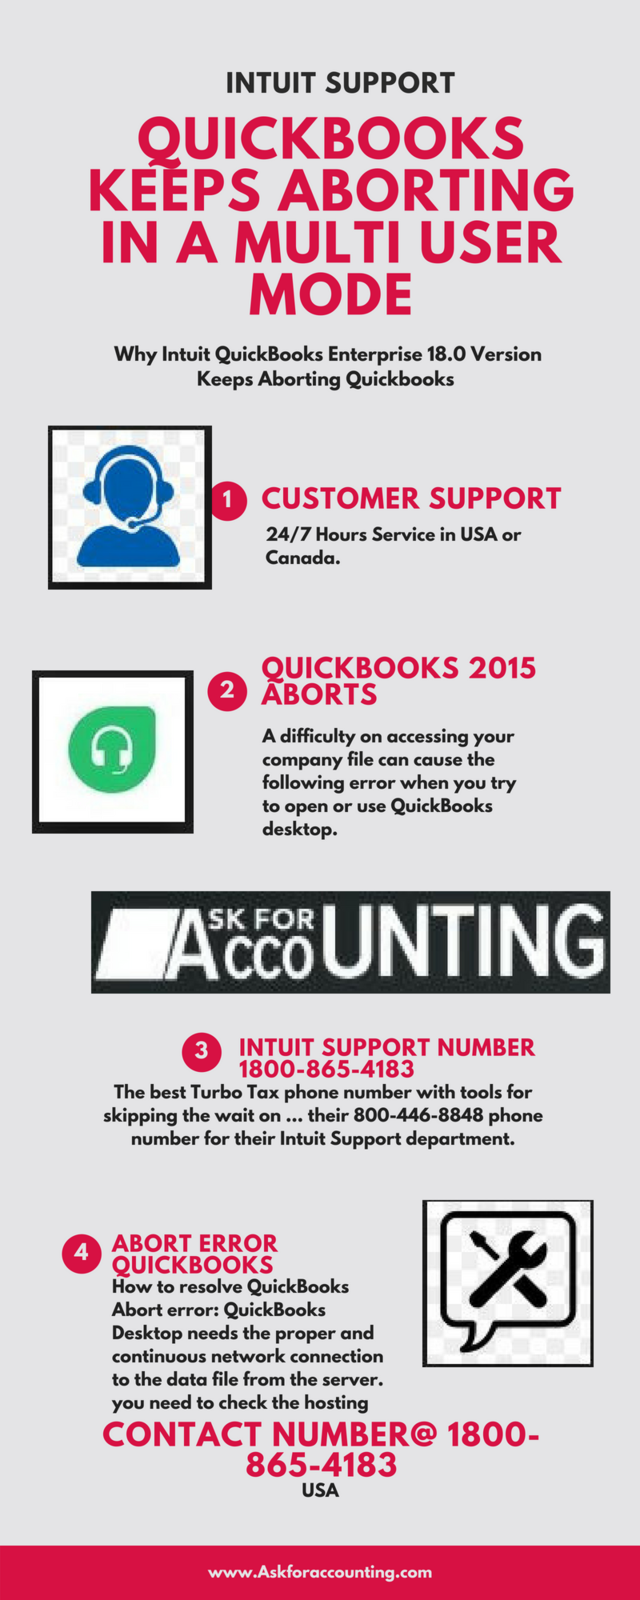 Quickbooks keeps aborting in a 1800 865 4183 multi user mode